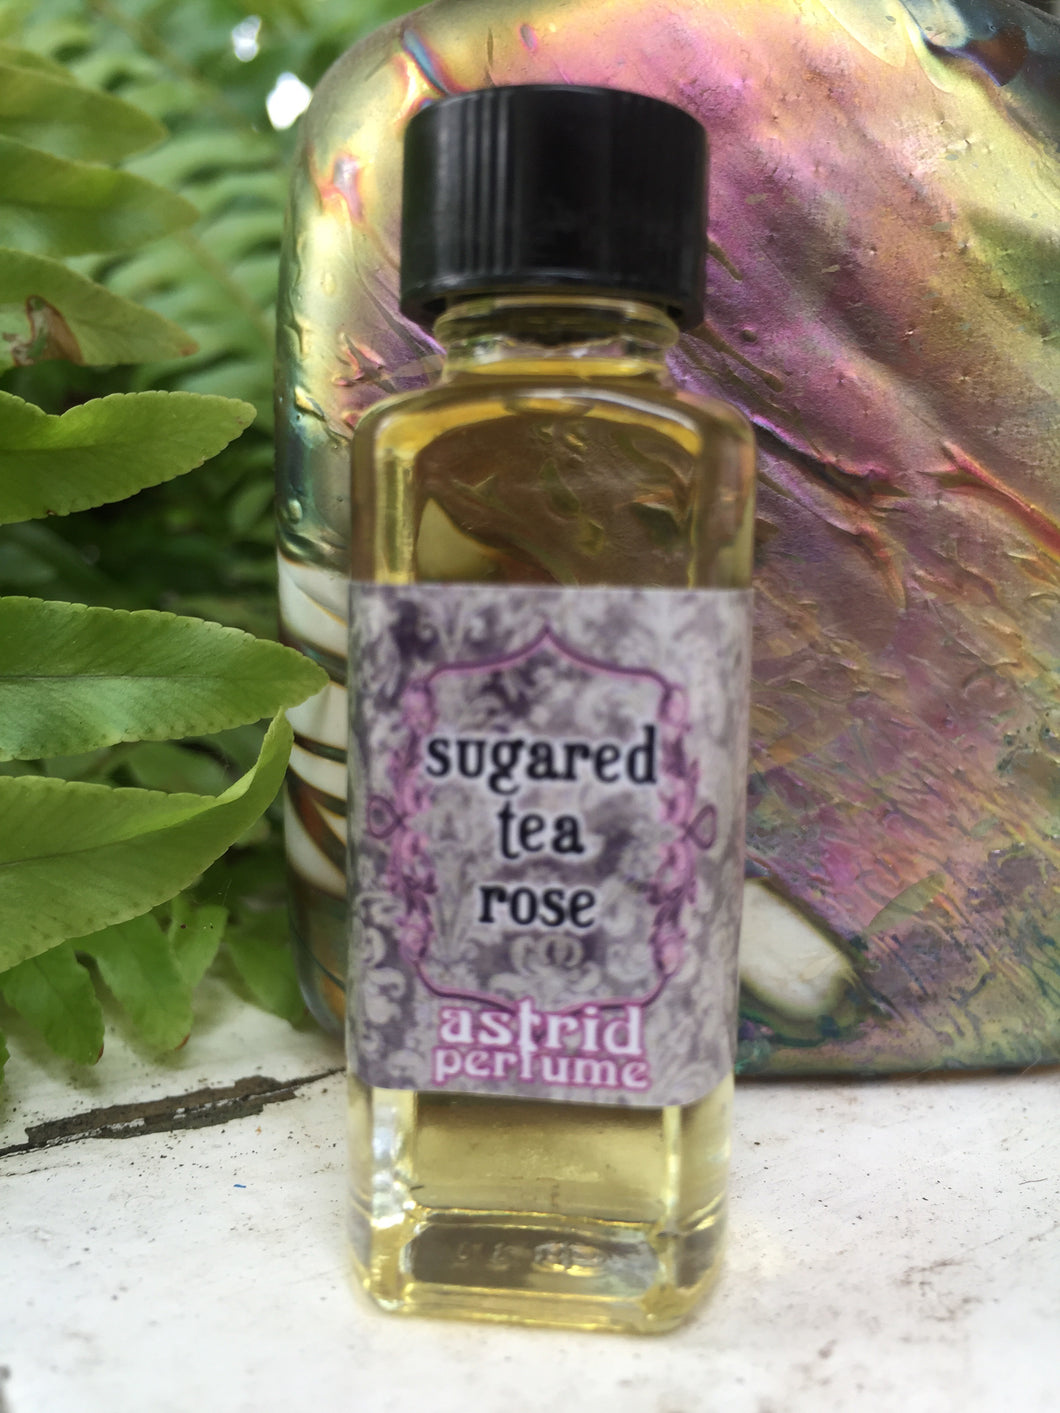 Sugared Tea Rose